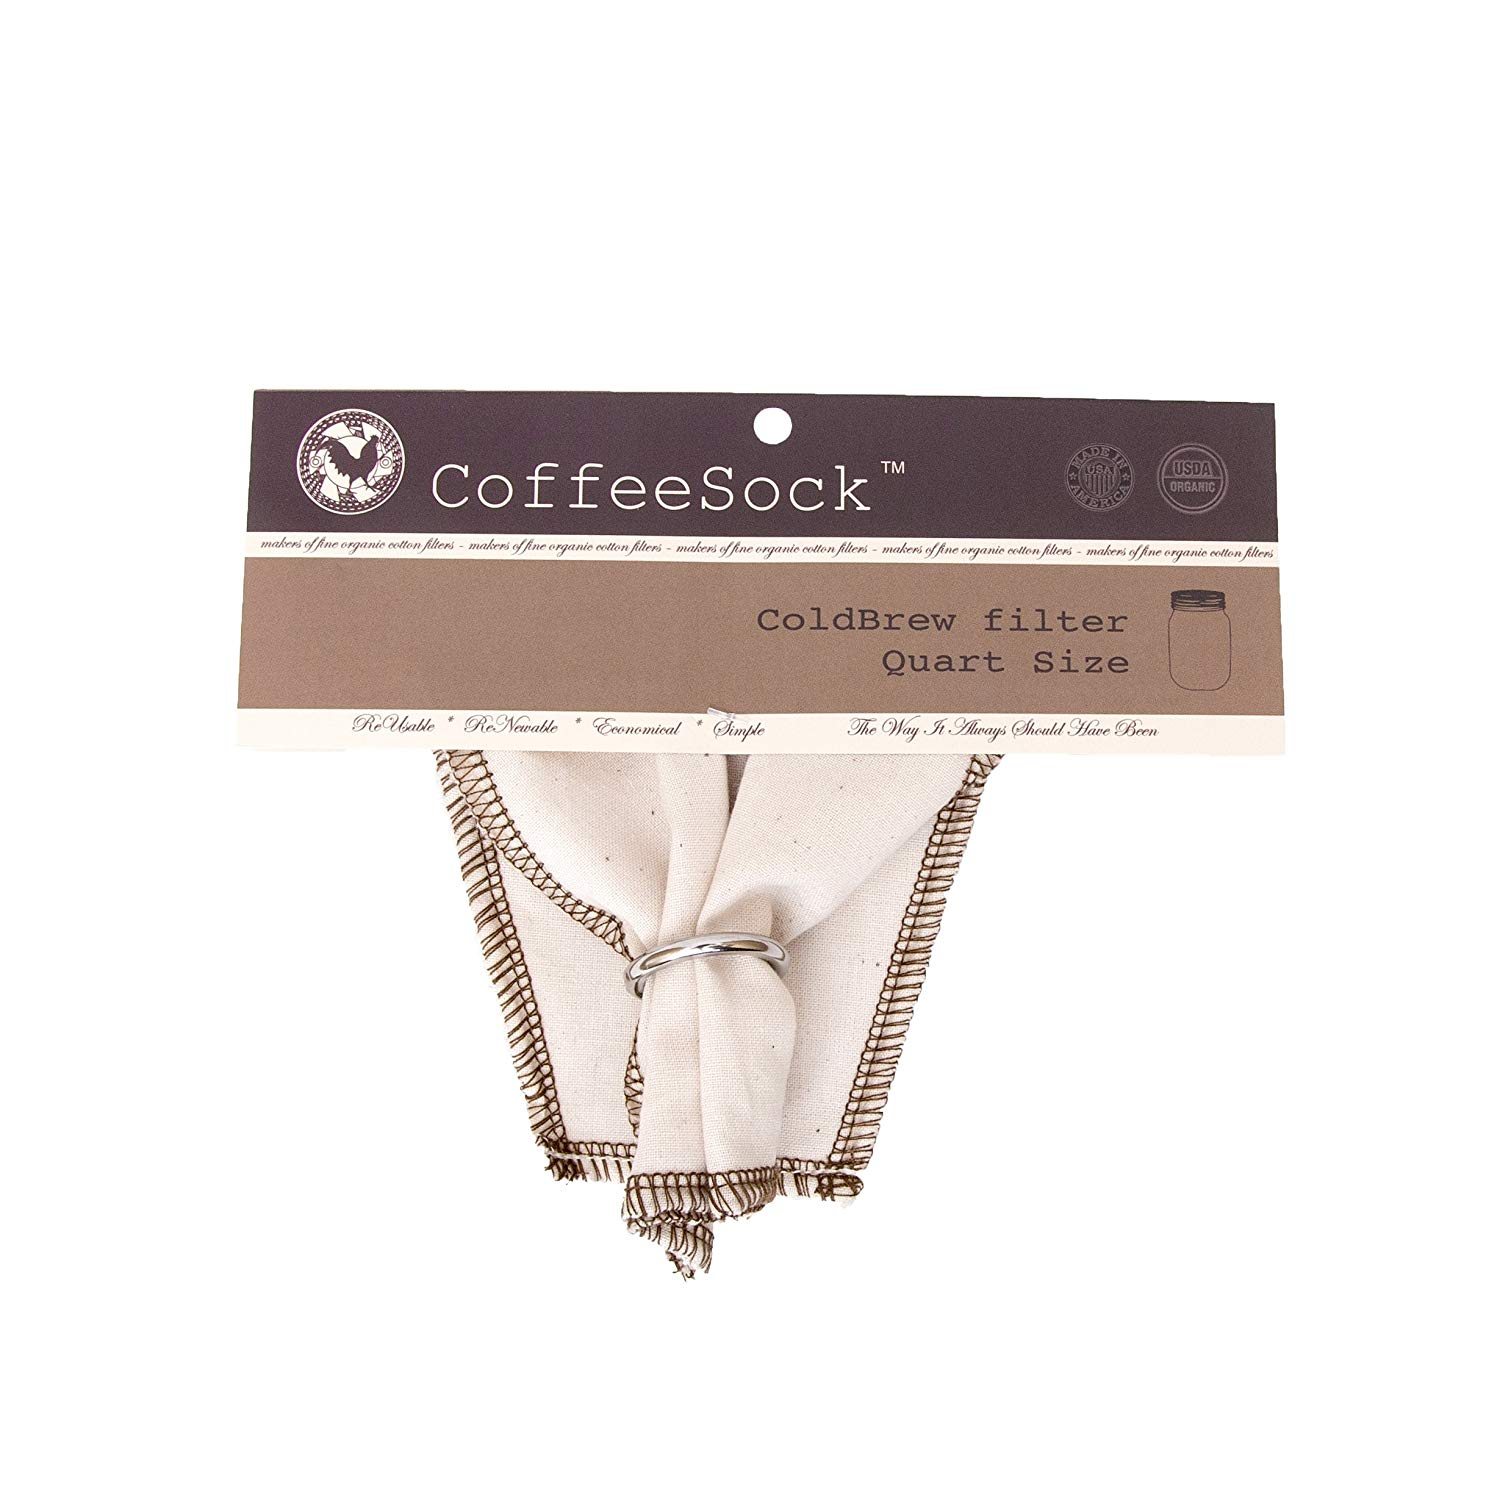 CoffeeSock ColdBrew Filter - GOTS Certified Organic Cotton Reusable Coffee Filter (32 OUNCE)